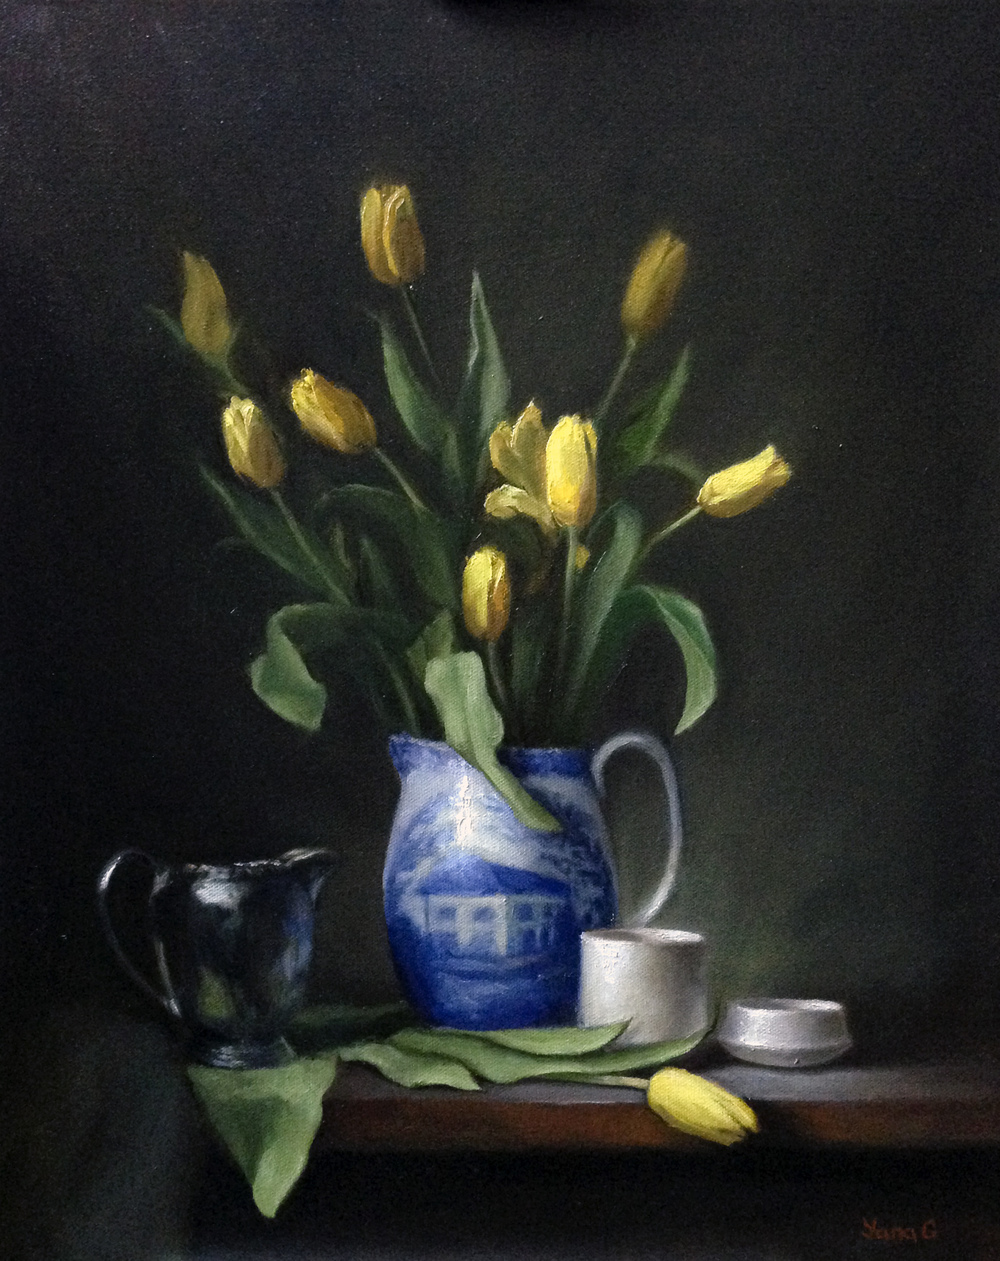 Yellow Tulips 16x20 Oil on canvas NFS